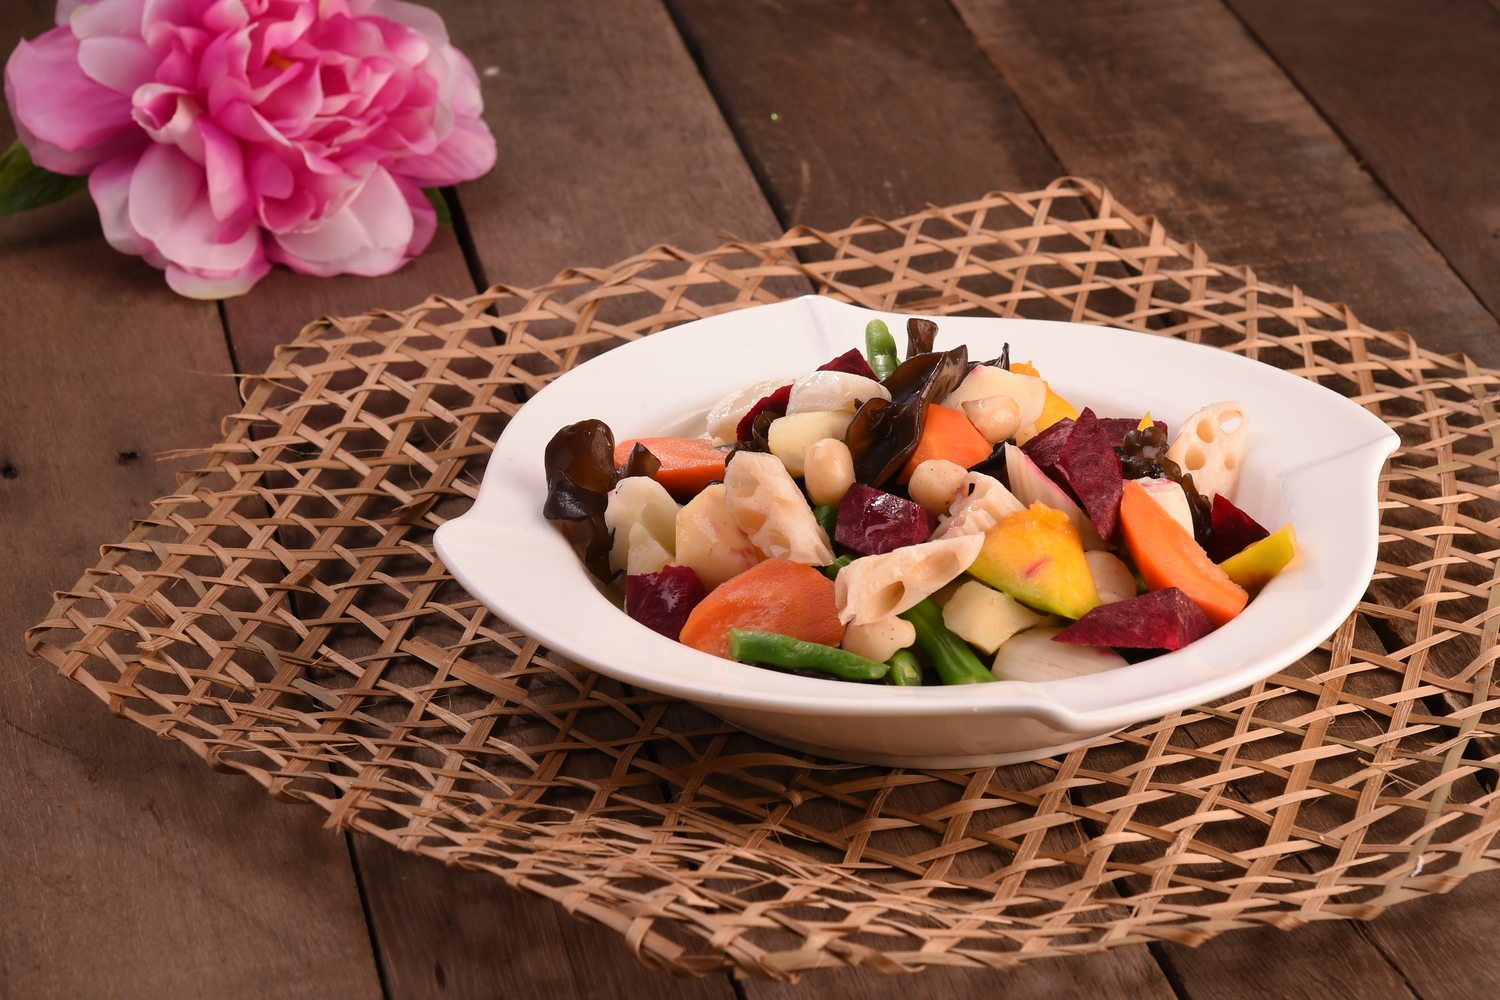 Stir Fried Mix Vegetables with Macadamia Nuts